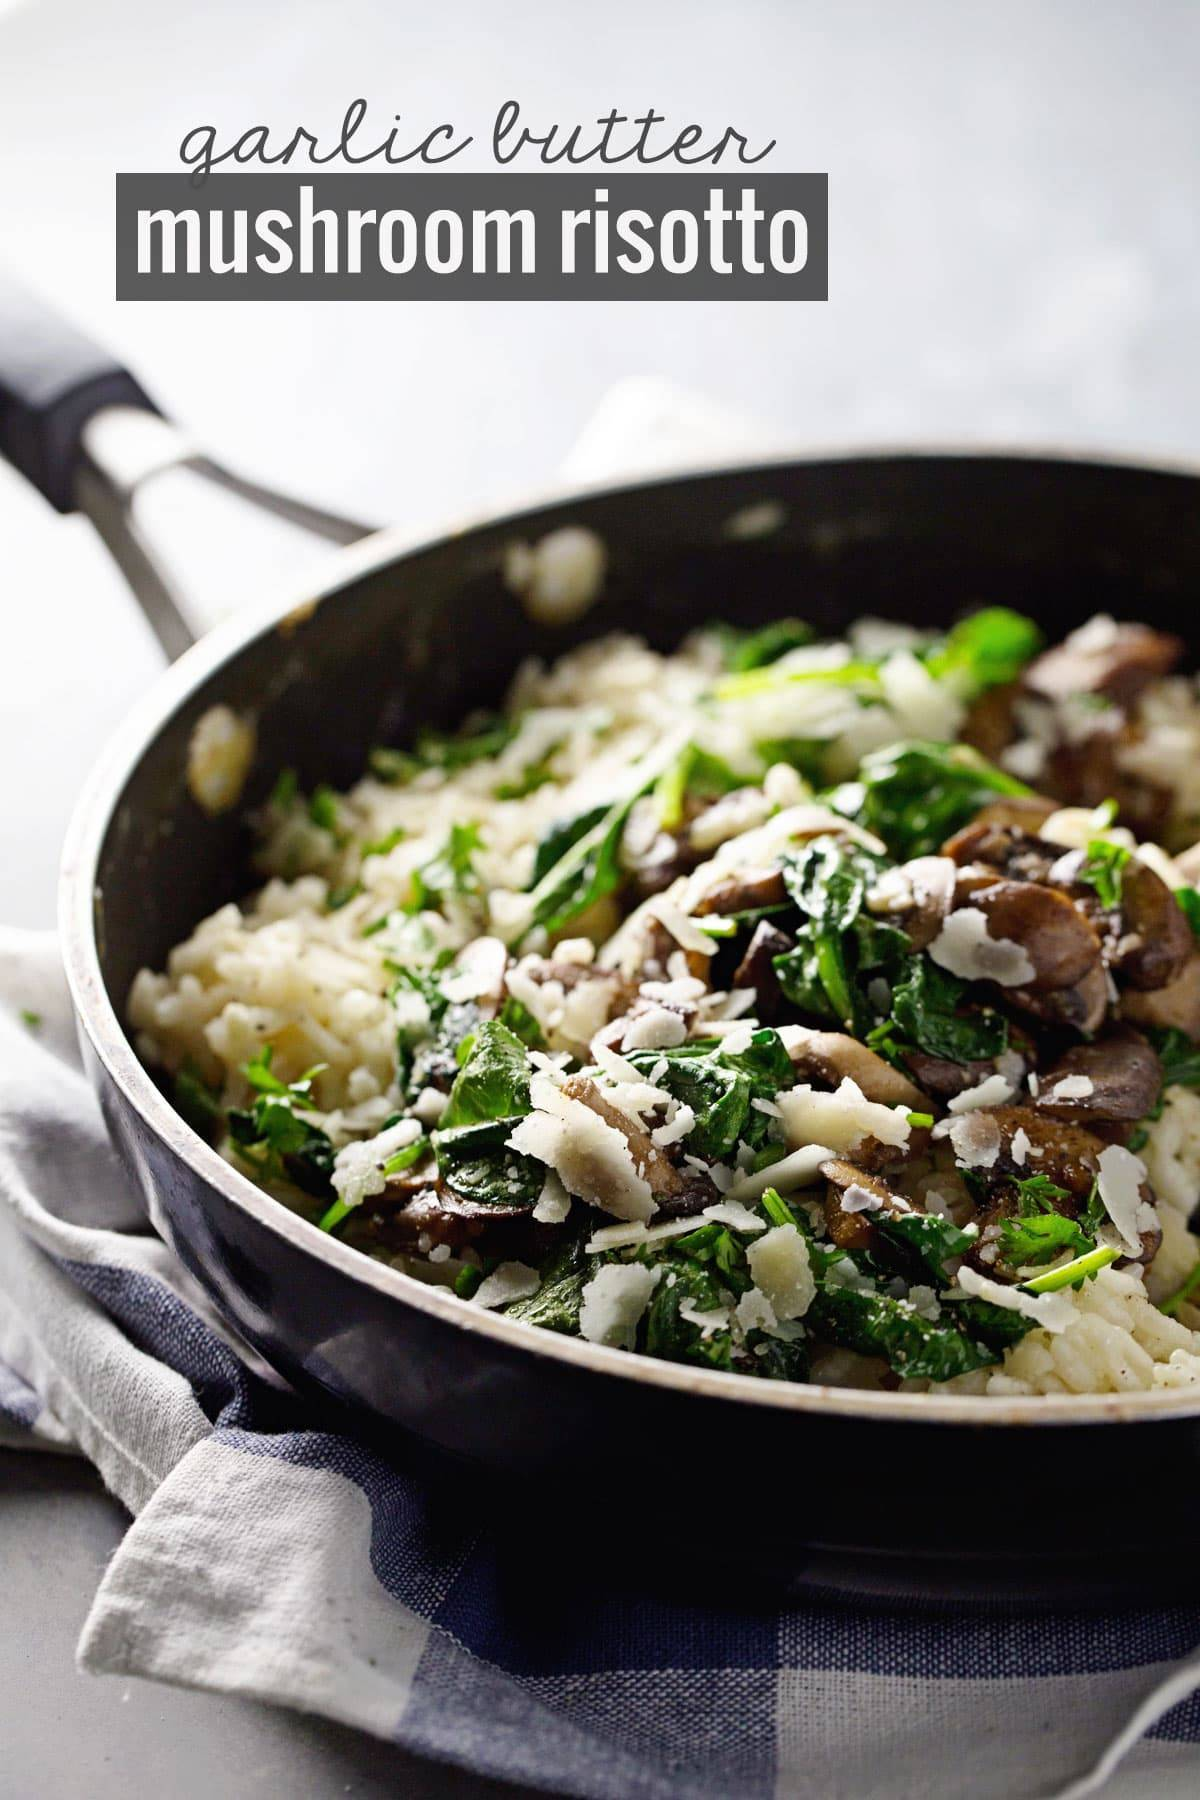 Garlic Butter Mushroom Risotto in a skillet.